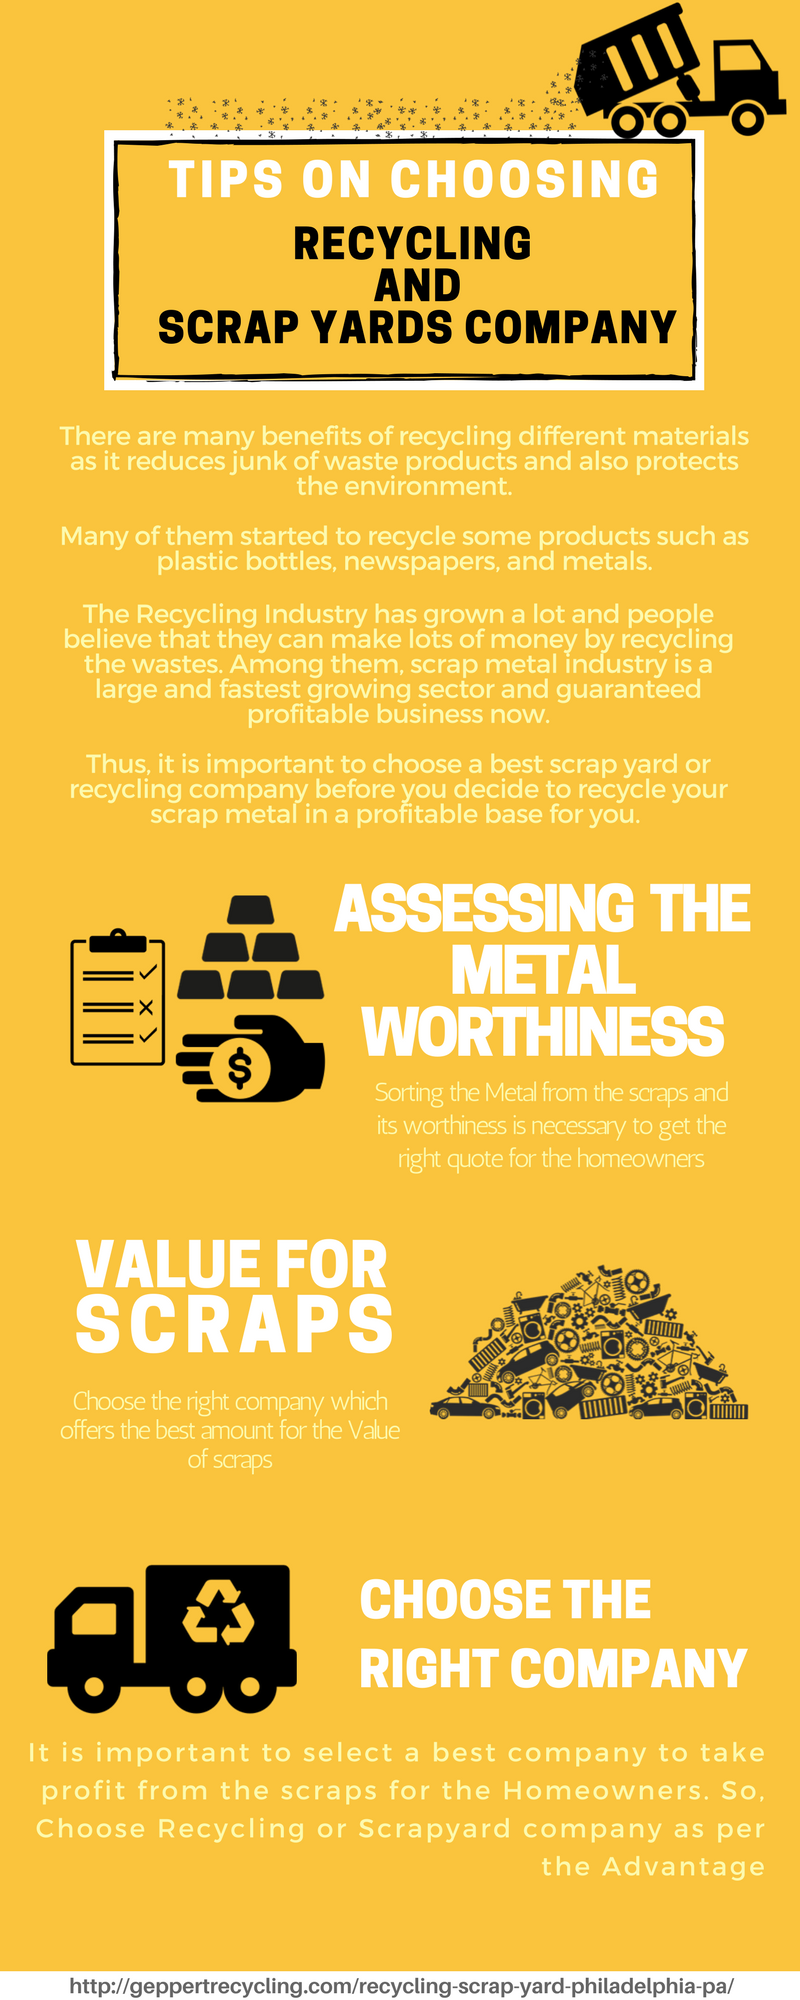 tips-on-choosing-recycling-and-scrap-yard-company-infographic-plaza